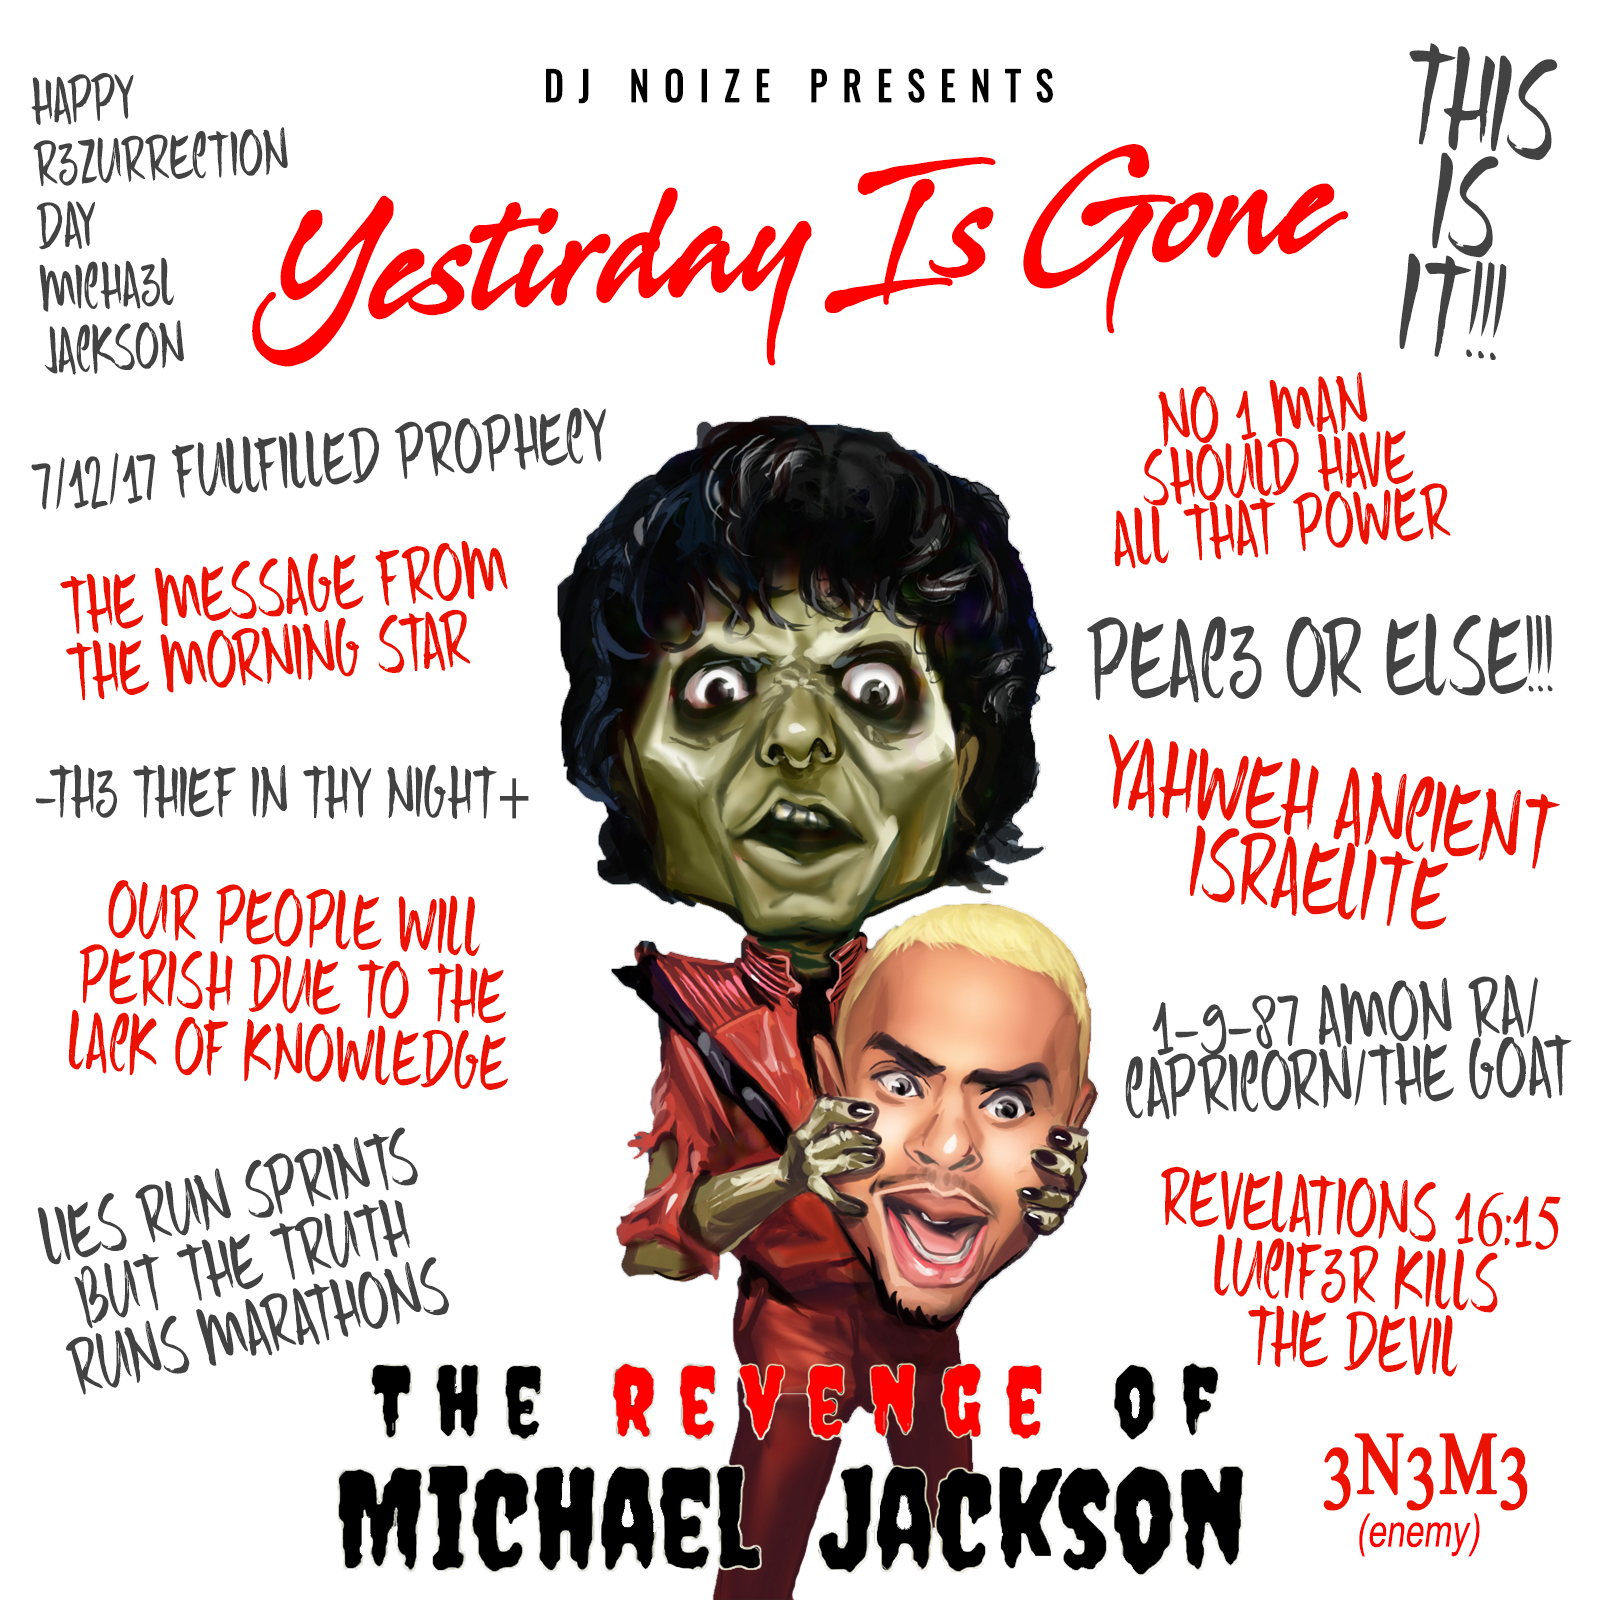 /myT03f00T3891/0-MUSIC/2018/09_SEPTEMBER/01/Mixtapes/The_Revenge_Of_Michael_Jackson_By_Yestirday_Is_Gone_Hosted_By_Dj_Noize/The_Revenge_Of_Michael_Jackson_By_Yestirday_Is_Gone_Hosted_By_Dj_Noize.jpg